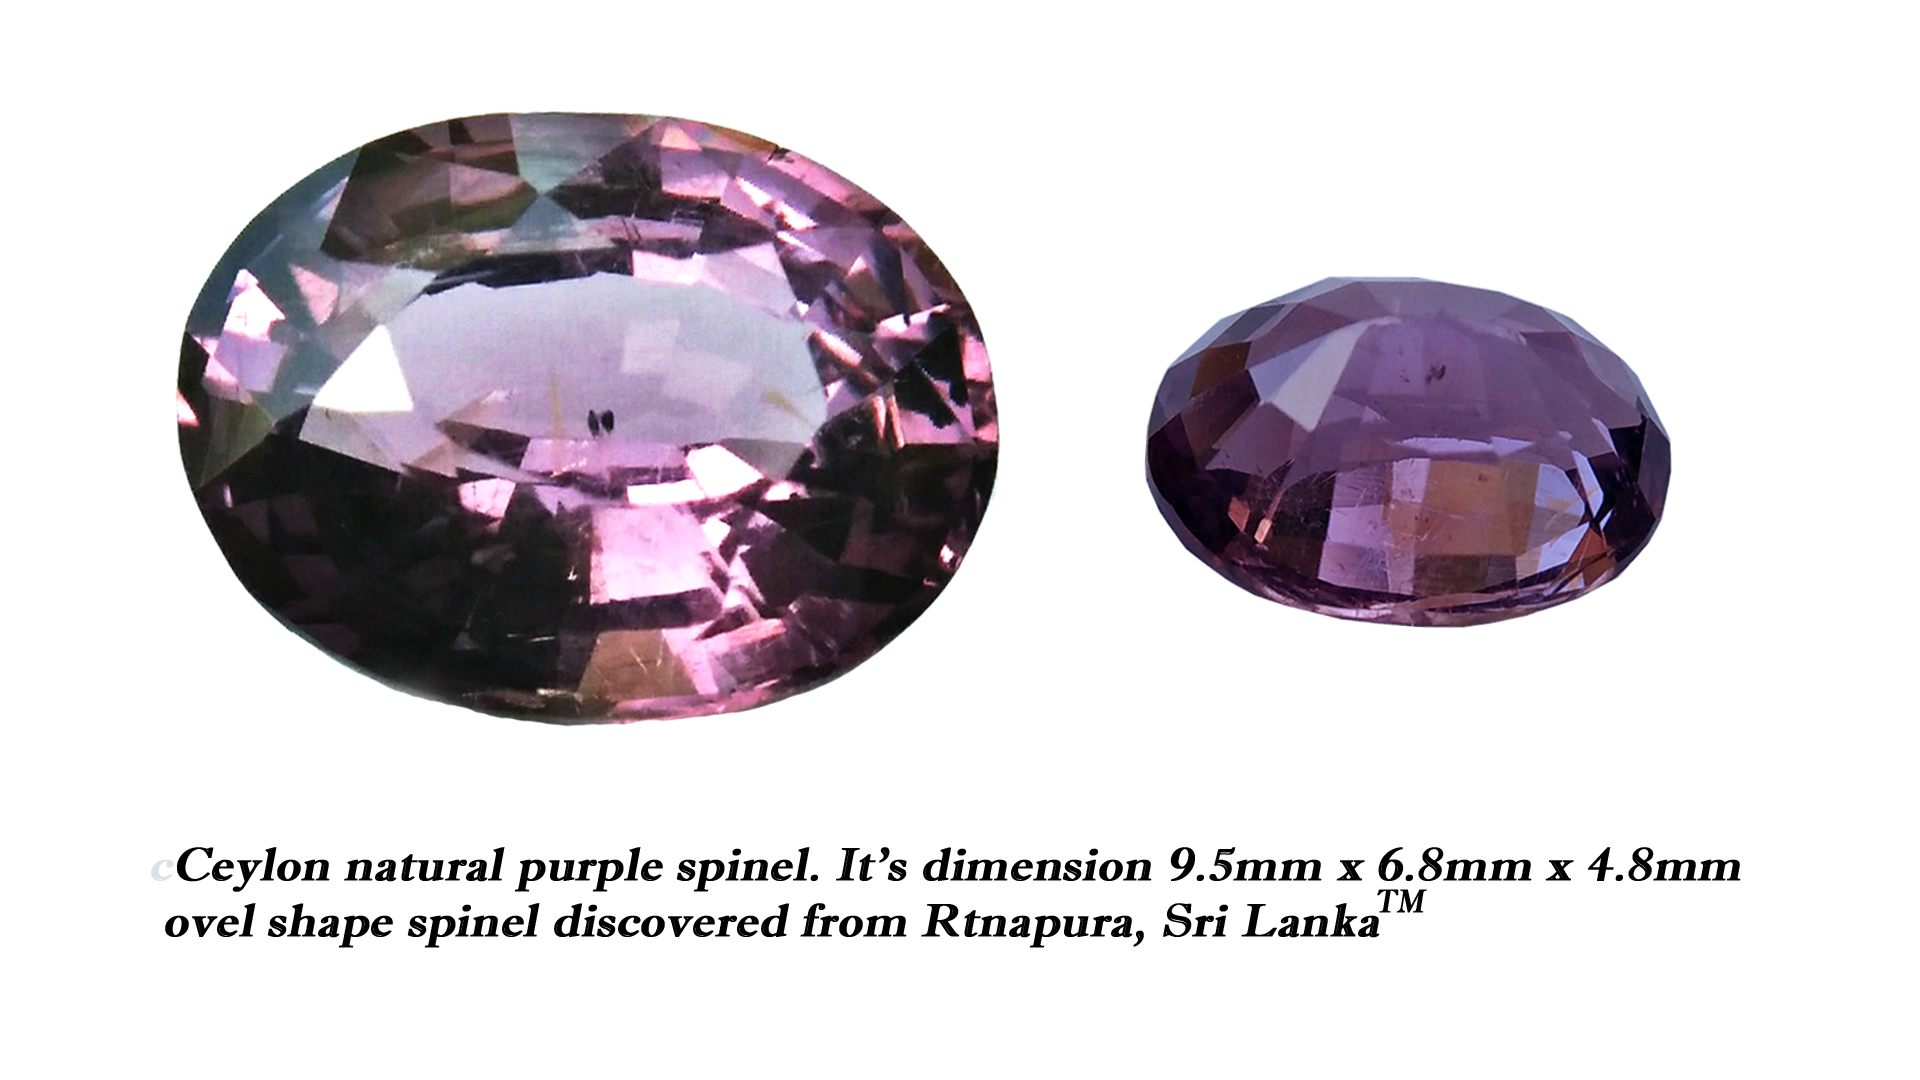 Spinel is the magnesium-aluminum member of the larger spinel group of minerals with chemical formula MgAl₂O₄. Spinel is actually a large group of minerals. Gahnite, hercynite, ceylonite, picotite, and galaxite are all part of the spinel group. This oxide mineral is a Cubic crystal system with 7.5–8.0 hardness according to the Mohs hardness scale. Spinels Specific Gravity is depending on the composition of chemicals such as Zn-rich spinel can be as high as 4.40, otherwise, it averages from 3.58 to 3.61. Spinel has many colors such as red, pink, blue, lavender/violet, dark green, brown, black, colorless, gray. Spinel is a single reflective Non-pleochroic gemstone and Anomalous in some blue zincian varieties. It can be found as Opaque, Translucent or transparent. Spinel RI value is n = 1.719  Some red and pink spinels have fluorescence under UV Light. also, Some spinels have magnetism Weak to medium. Natural spinels typically are not enhanced. Spinels are found in Madagascar, Sri Lanka, Vietnam, Myanmar, Tanzania, Kenya, Nigeria, Afghanistan, Albania, Algeria, Atlantic Ocean, Australia, Belgium, Bolivia, Brazil, Cambodia, Canada. Spinel has long been found in the gemstone-bearing gravel of Sri Lanka. Since 2000 in several locations around the world have been discovered spinels with unusual vivid colors. when the mineral is pure, it's colorless. That's called allochromatic gemstones. Als, Spinels are found with 4-rayed stars and 6-rayed stars. Some spinels are found with a color-changing effect such as Blue to violet, Grayish-blue to reddish-violet and some stones from Sri Lanka change from violet to reddish violet, due to the presence of Fe, Cr, and V. Blue Spinel is a very special gemstone because it is one of the few that occur naturally. The blue Spinel is colored from the impurity of Cobalt in the crystal lattice. High Color saturation in blue Spinels are always colored by Cobalt and are extremely rare to find. Cobalt spinel has high market value. Healing Properties of Spinels 👇 Spinel is known as the stone of revitalization. This MgAl2O4 mineral powers make the gums and teeth stronger and is also beneficial for gums, skin, slimming the healthy and overweight body and cancer healing. Spinel promotes physical vitality, refills the energy and eases exhaustion. Spinel is a very soothing stone, as it calms and relieves stress, anxiety, PTSD and depression. Also, Spinel is working with chakra balancing. Black Spinel - Earth Star Chakra , Red or Pink - Spinel Base Chakra, Green Spinel - Heart chakra, Blue Spinel - Throat chakra, Purple Spinel